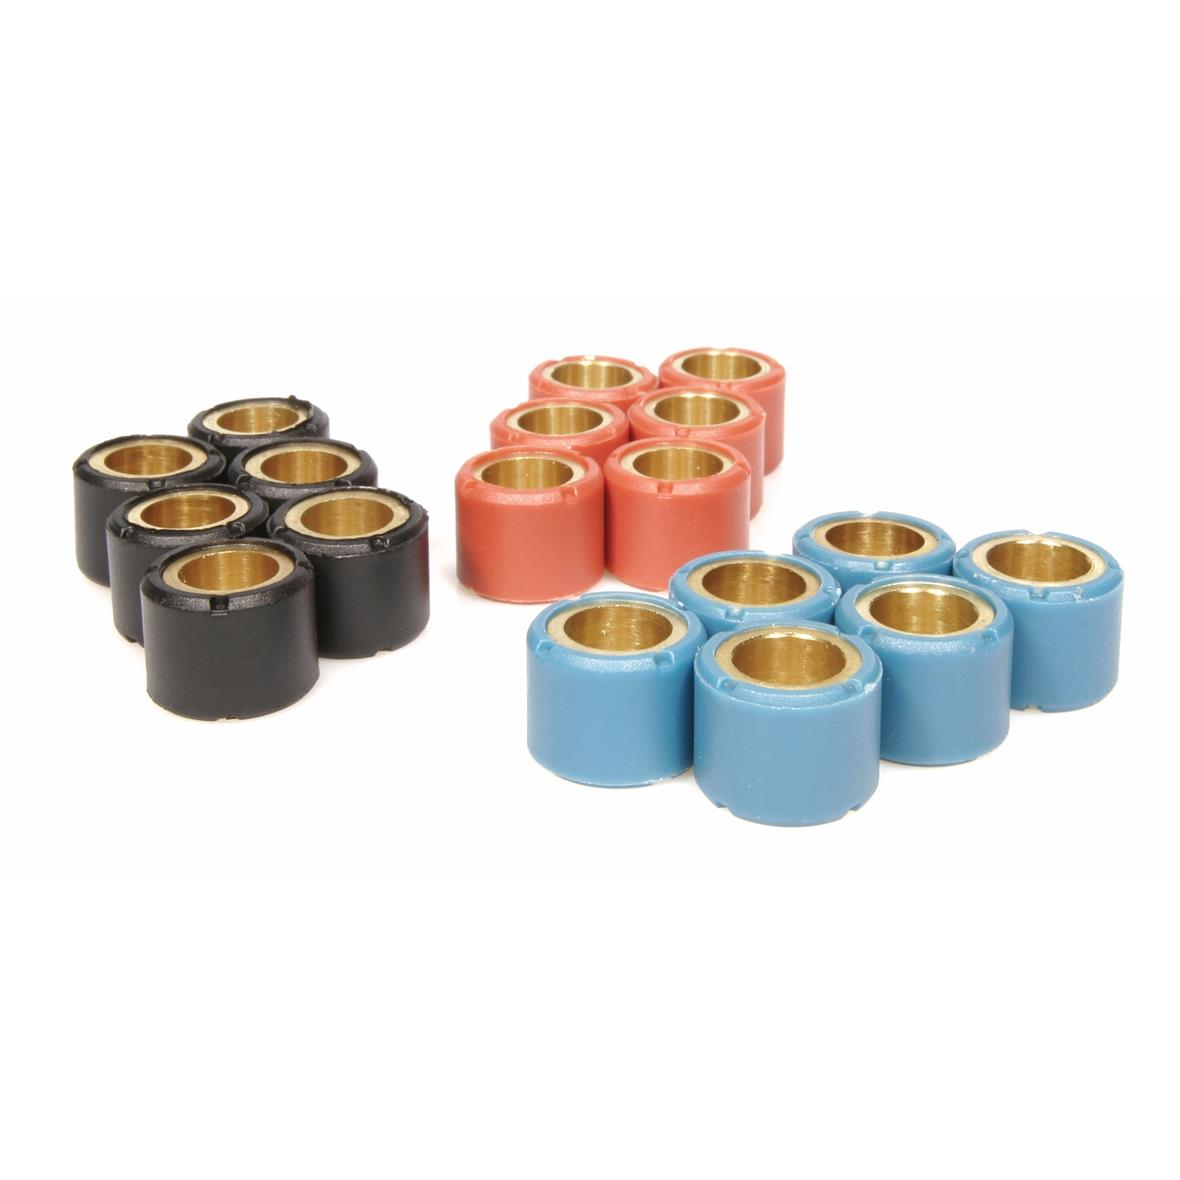 Product Image for 'Variator Rollers RMS 19x15,5 mm 5,5gTitle'